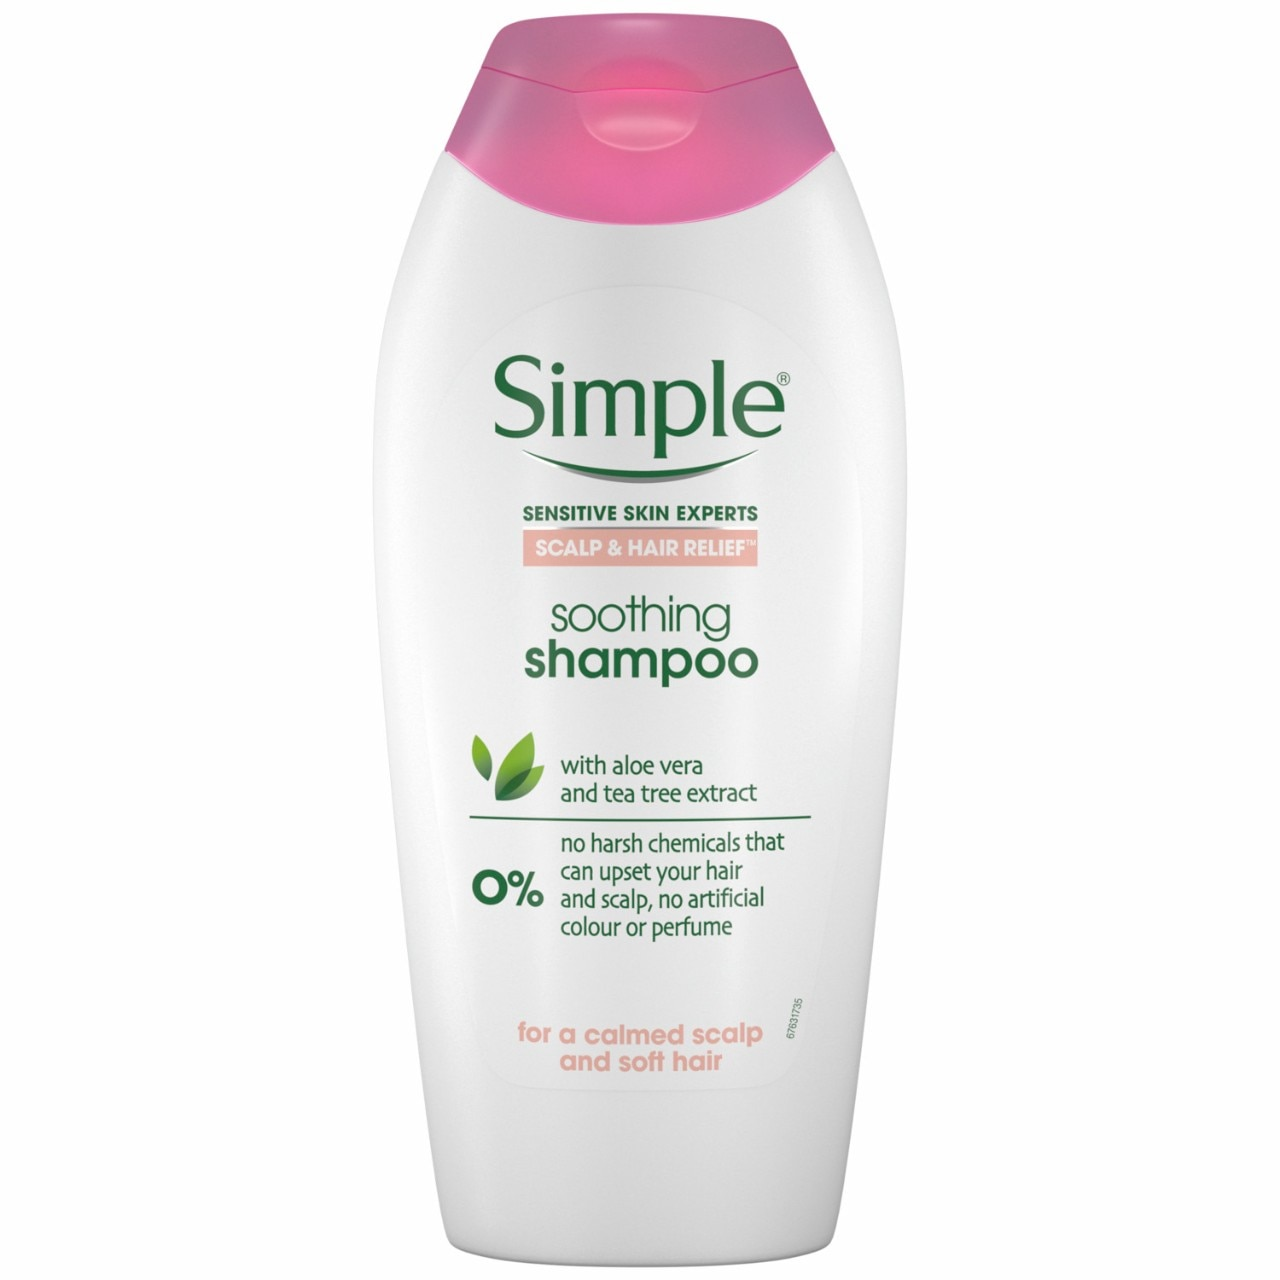 Simple Scalp & Hair Relief Soothing Shampoo